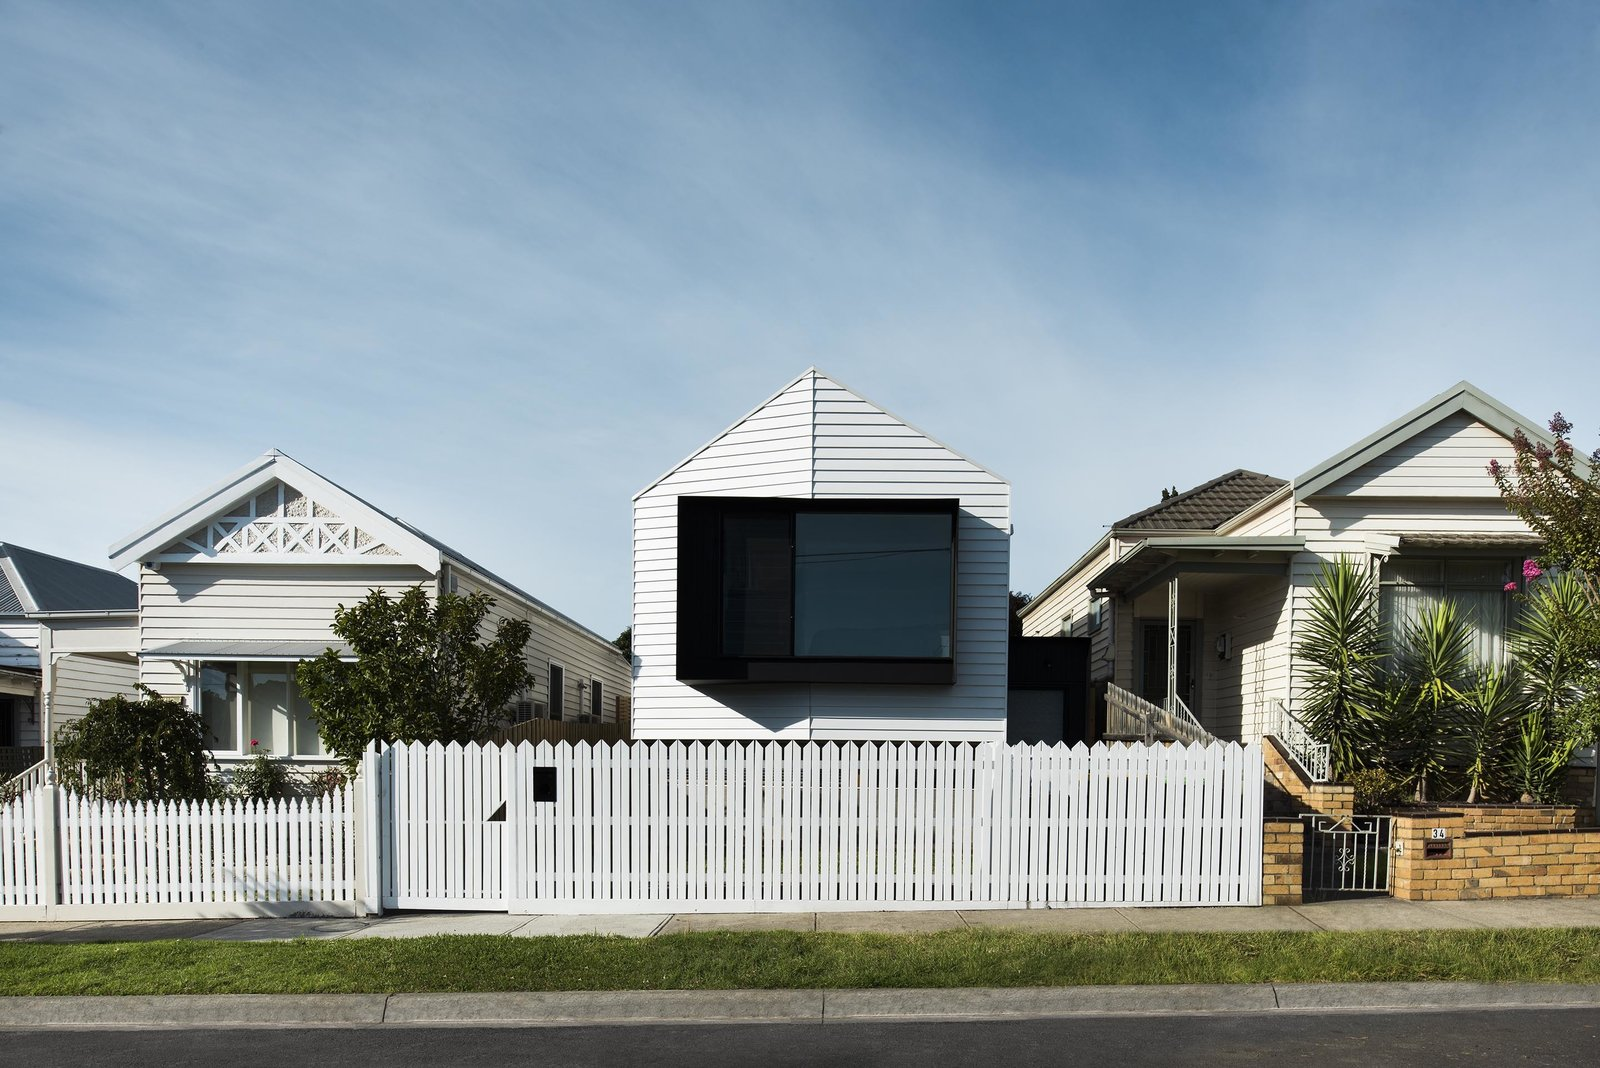 A Cool Melbourne Cottage Riffs Off of its Victorian Neighbors